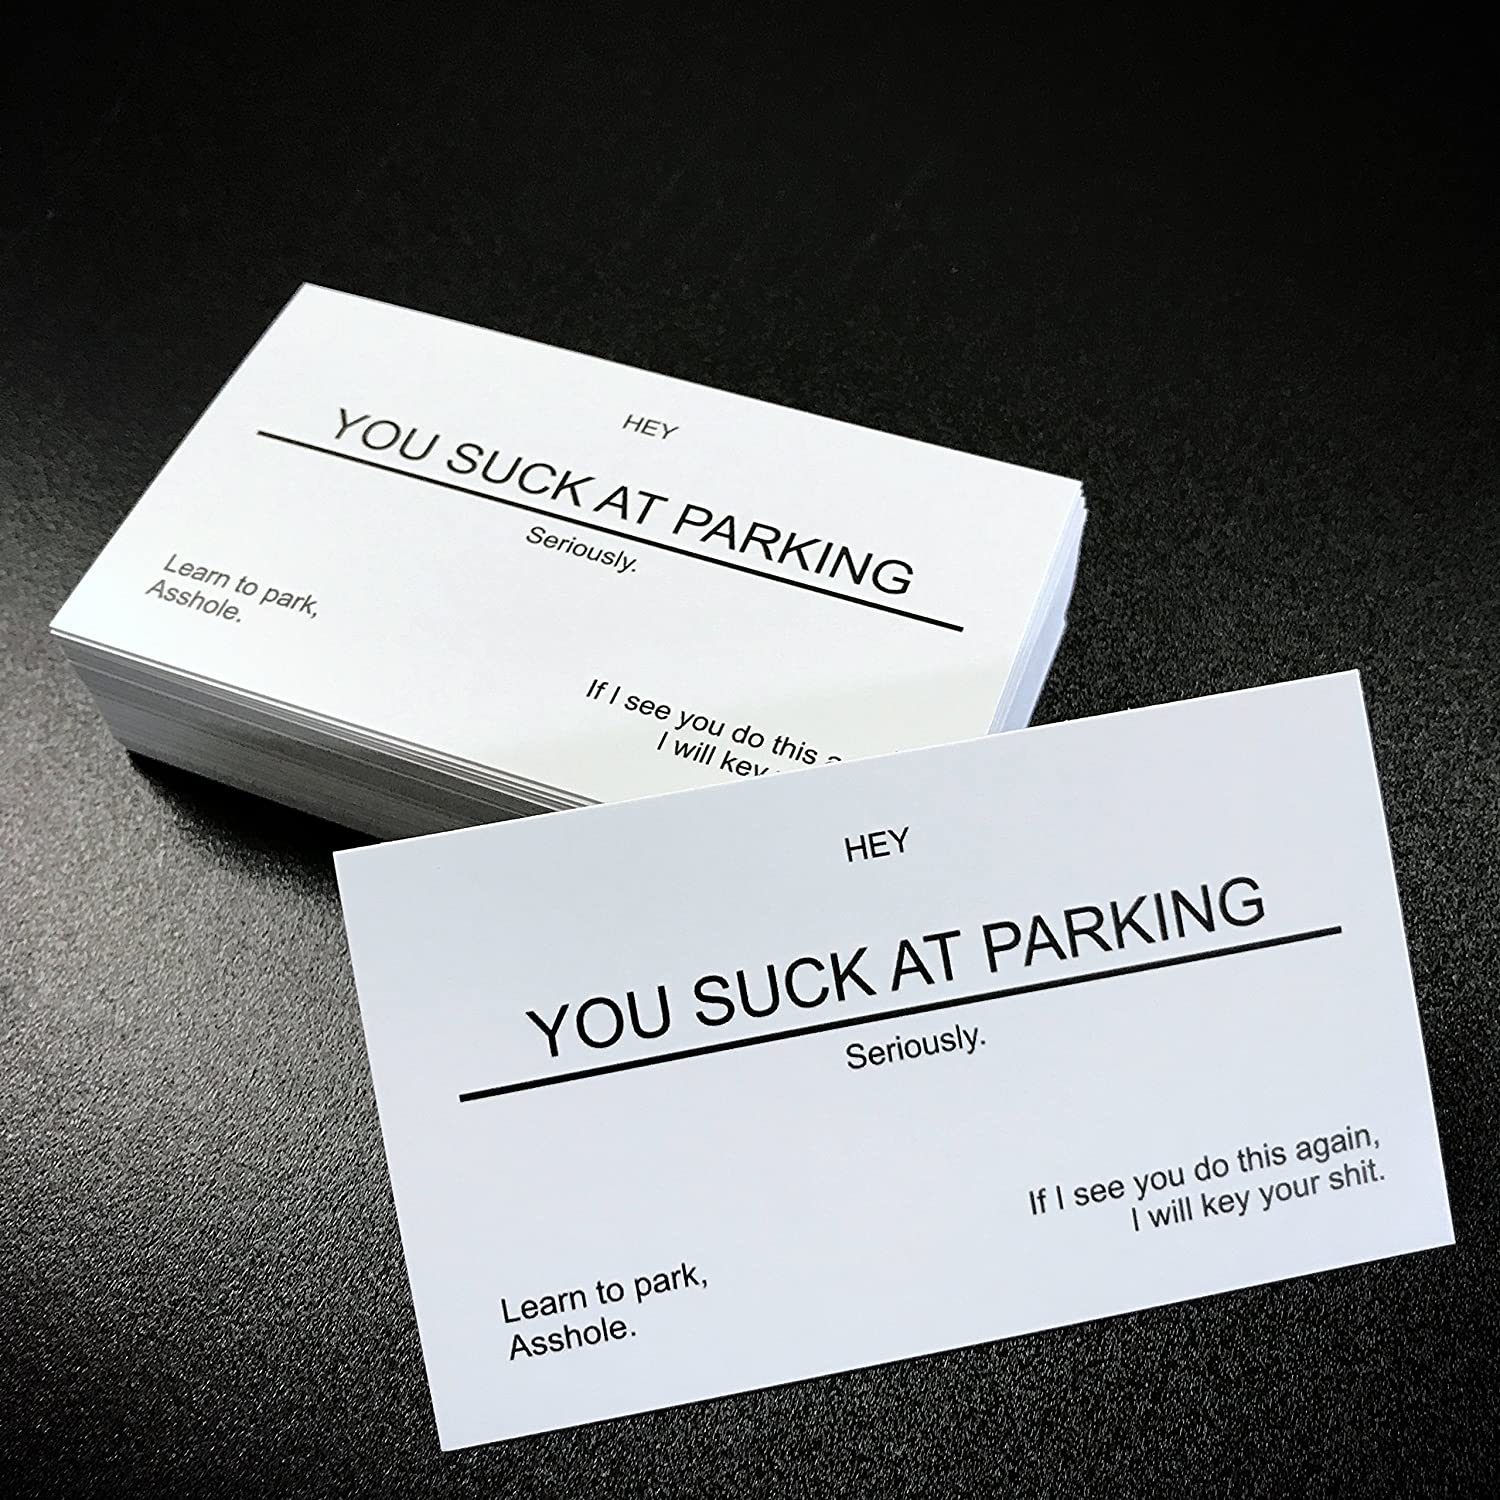 Amazon.com : YOU SUCK AT PARKING Business cards (10 pack) white ...